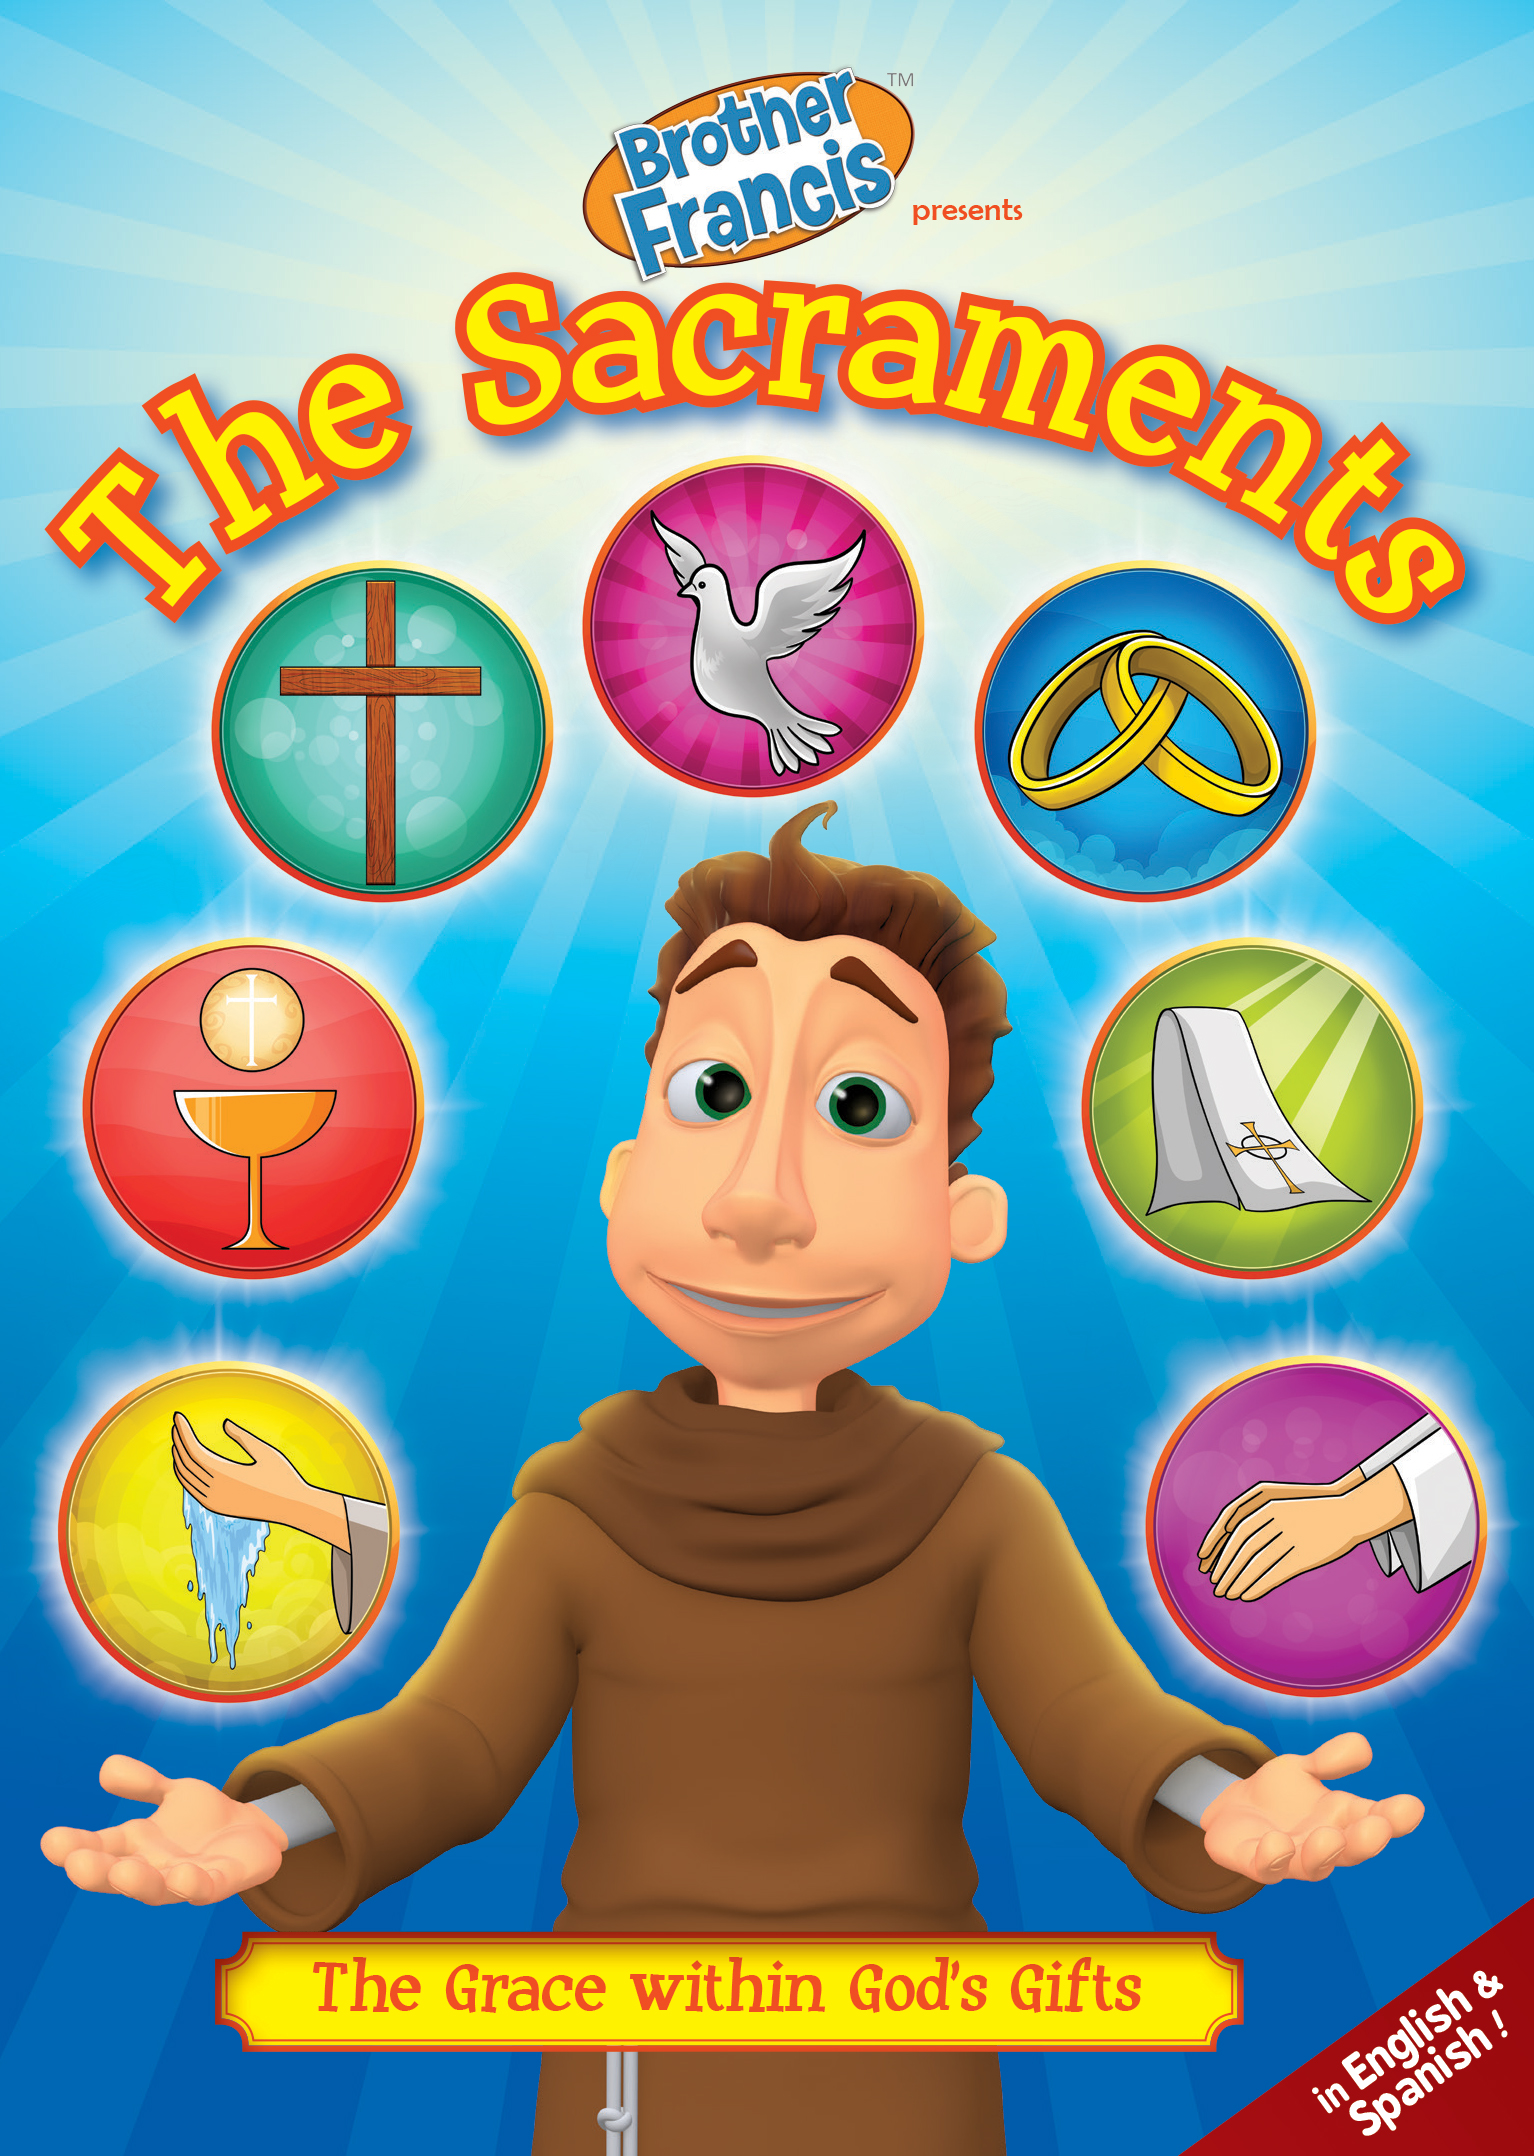 Brother Francis episode 12: The Sacraments